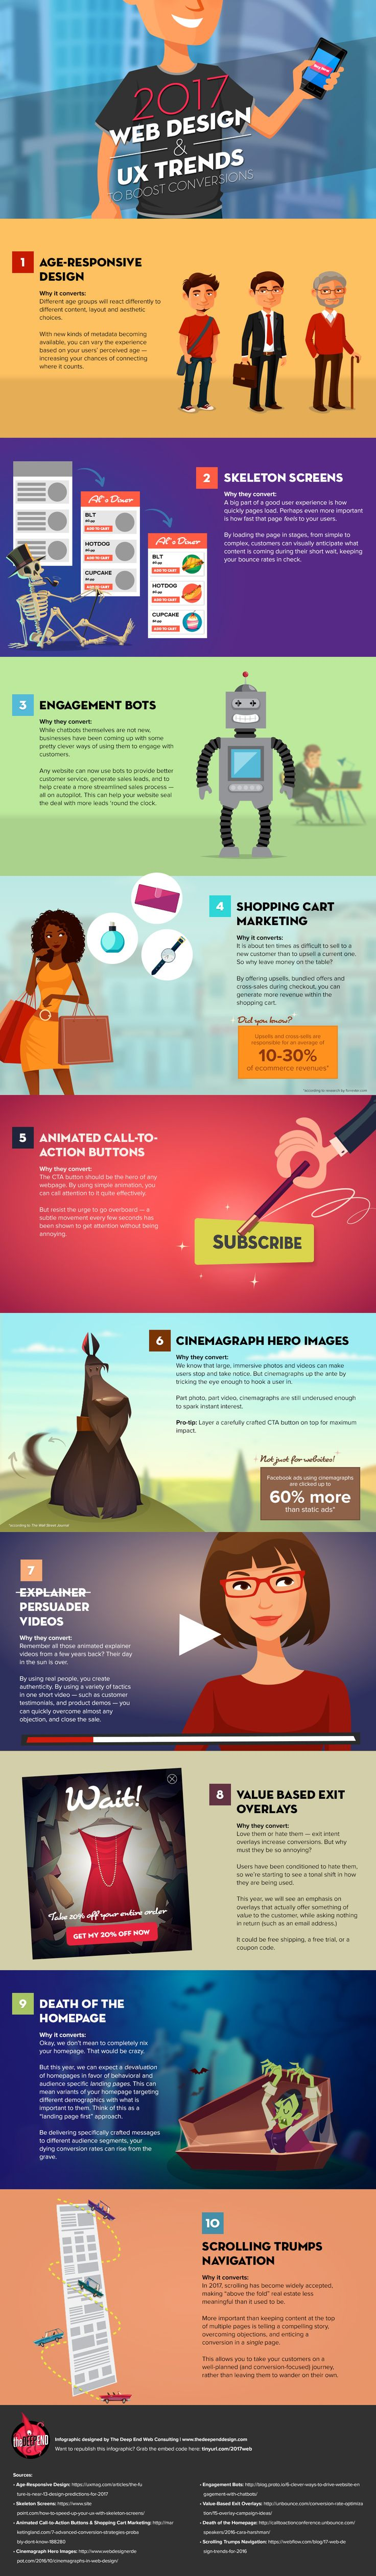 1000 Ideas About Web Design On Pinterest Website Designs